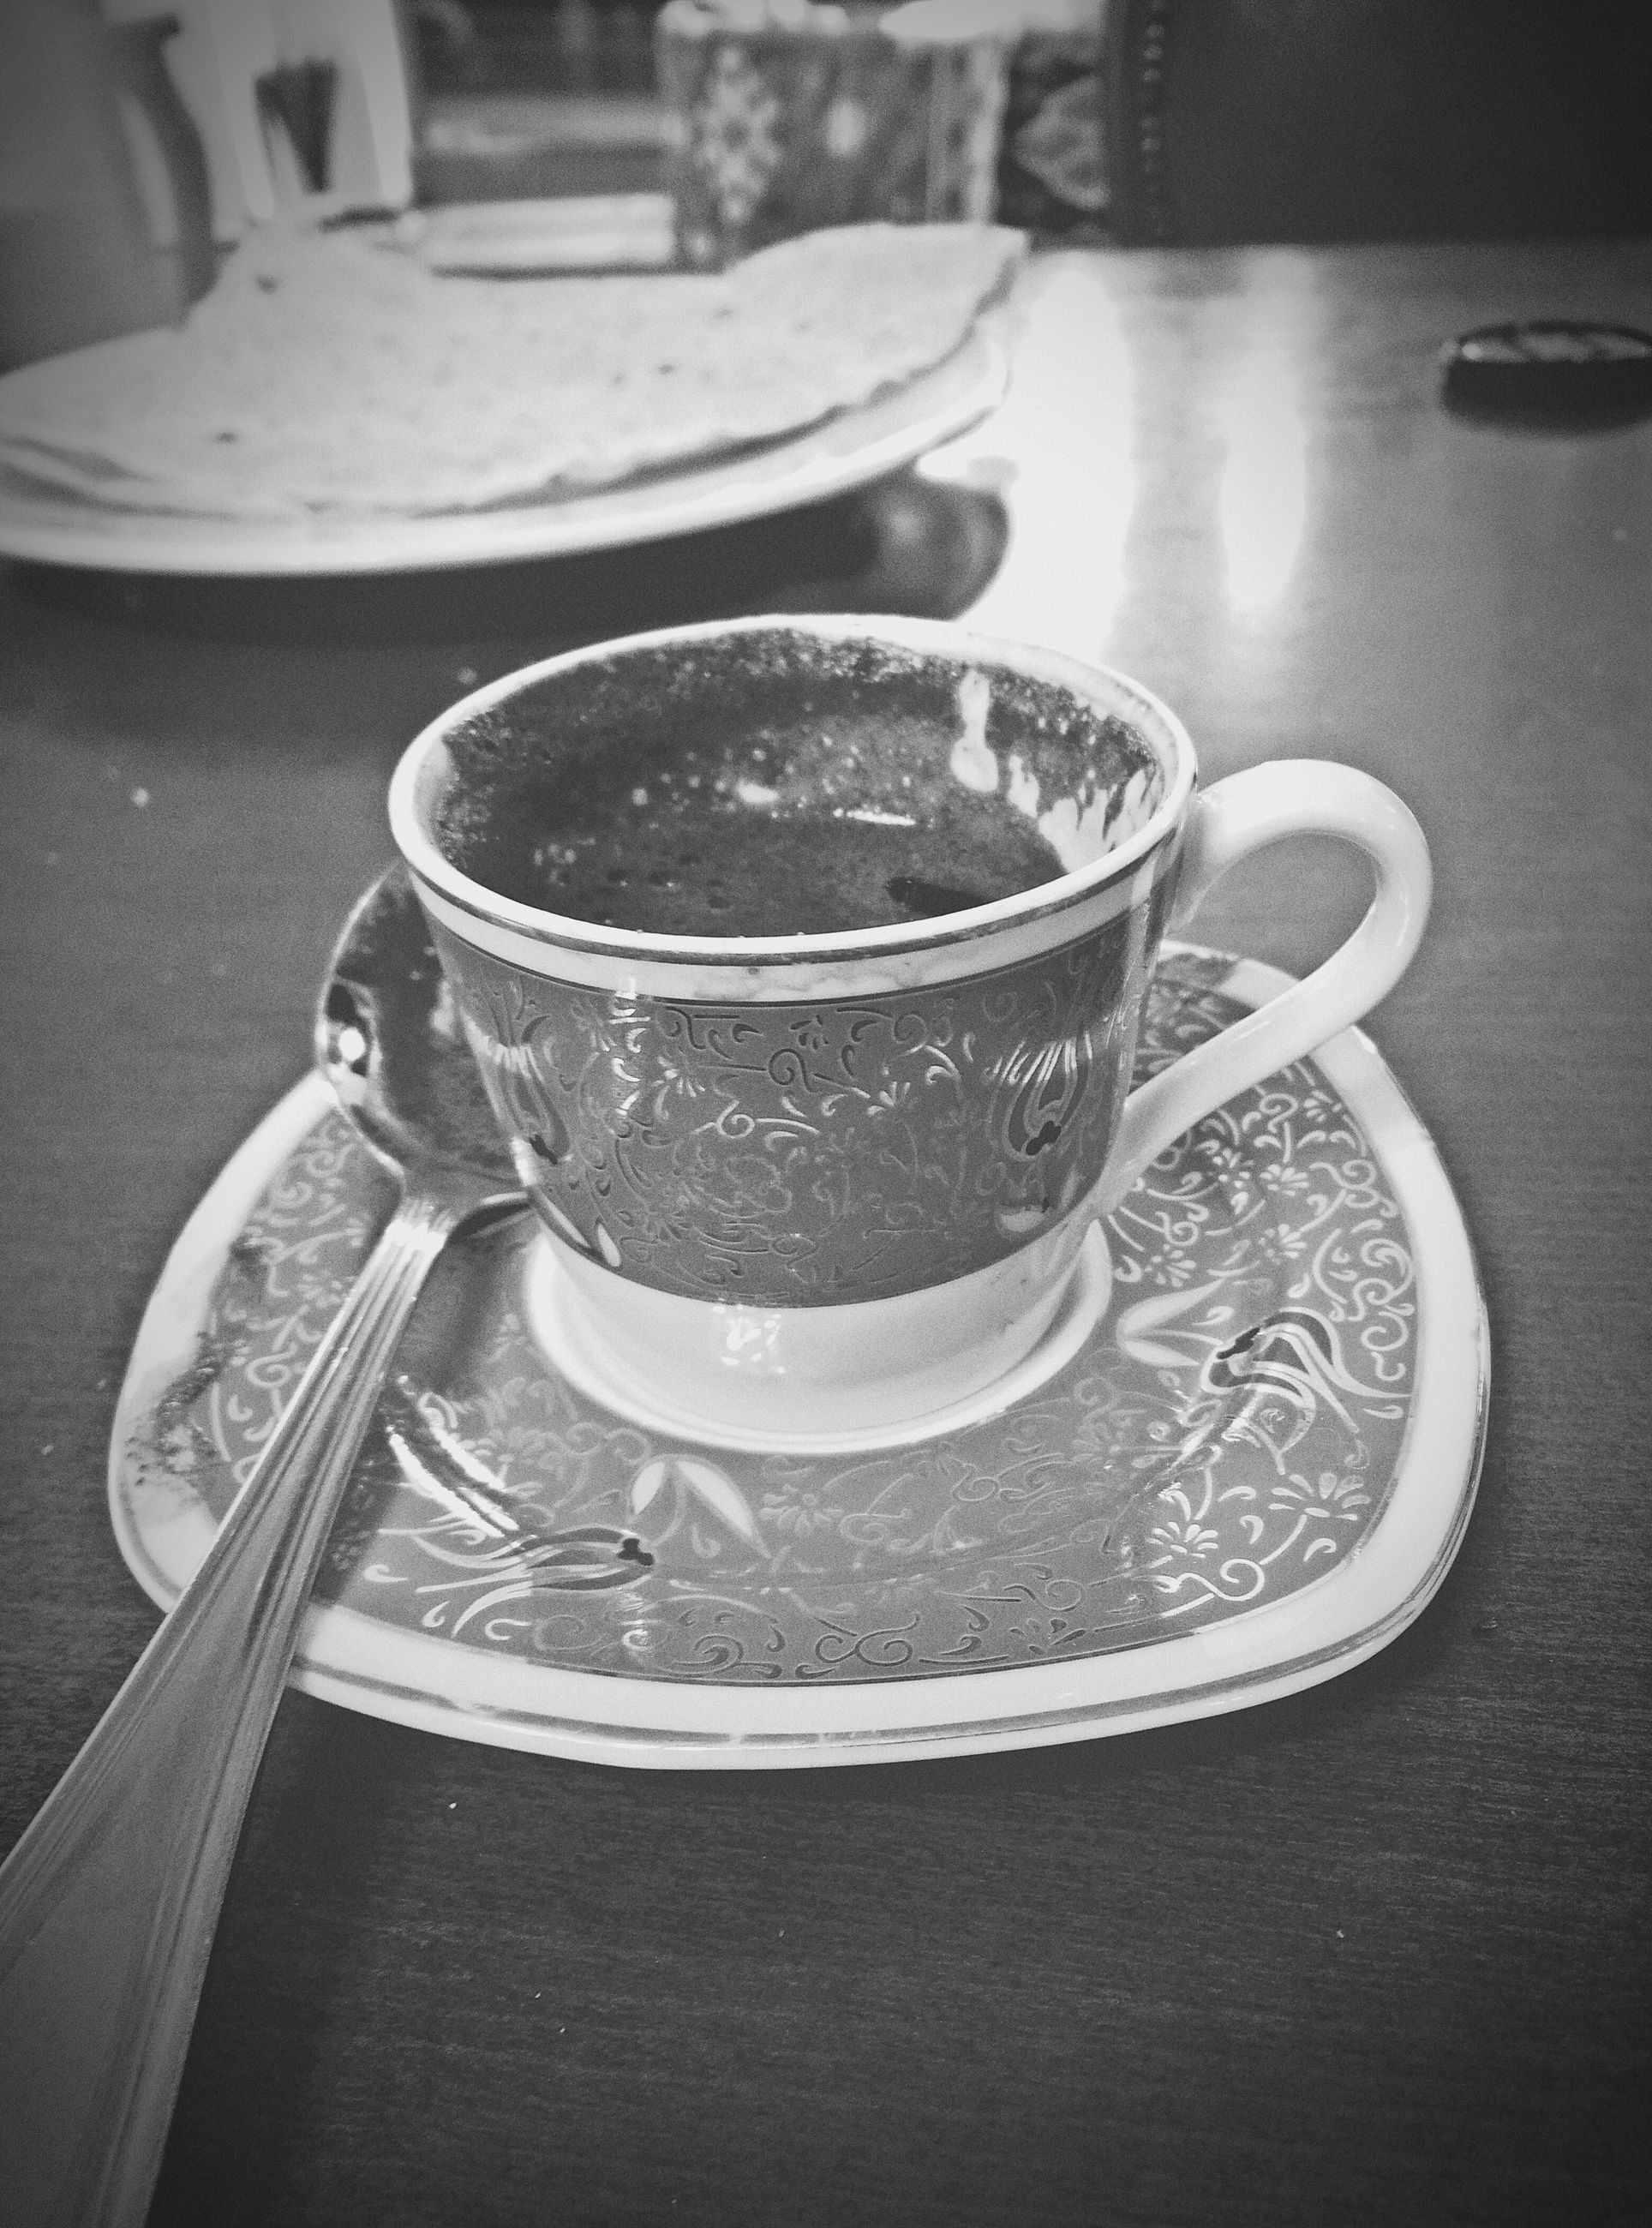 close-up, indoors, table, still life, no people, day, metal, focus on foreground, high angle view, street, sunlight, drink, food and drink, reflection, empty, coffee cup, container, shadow, glass - material